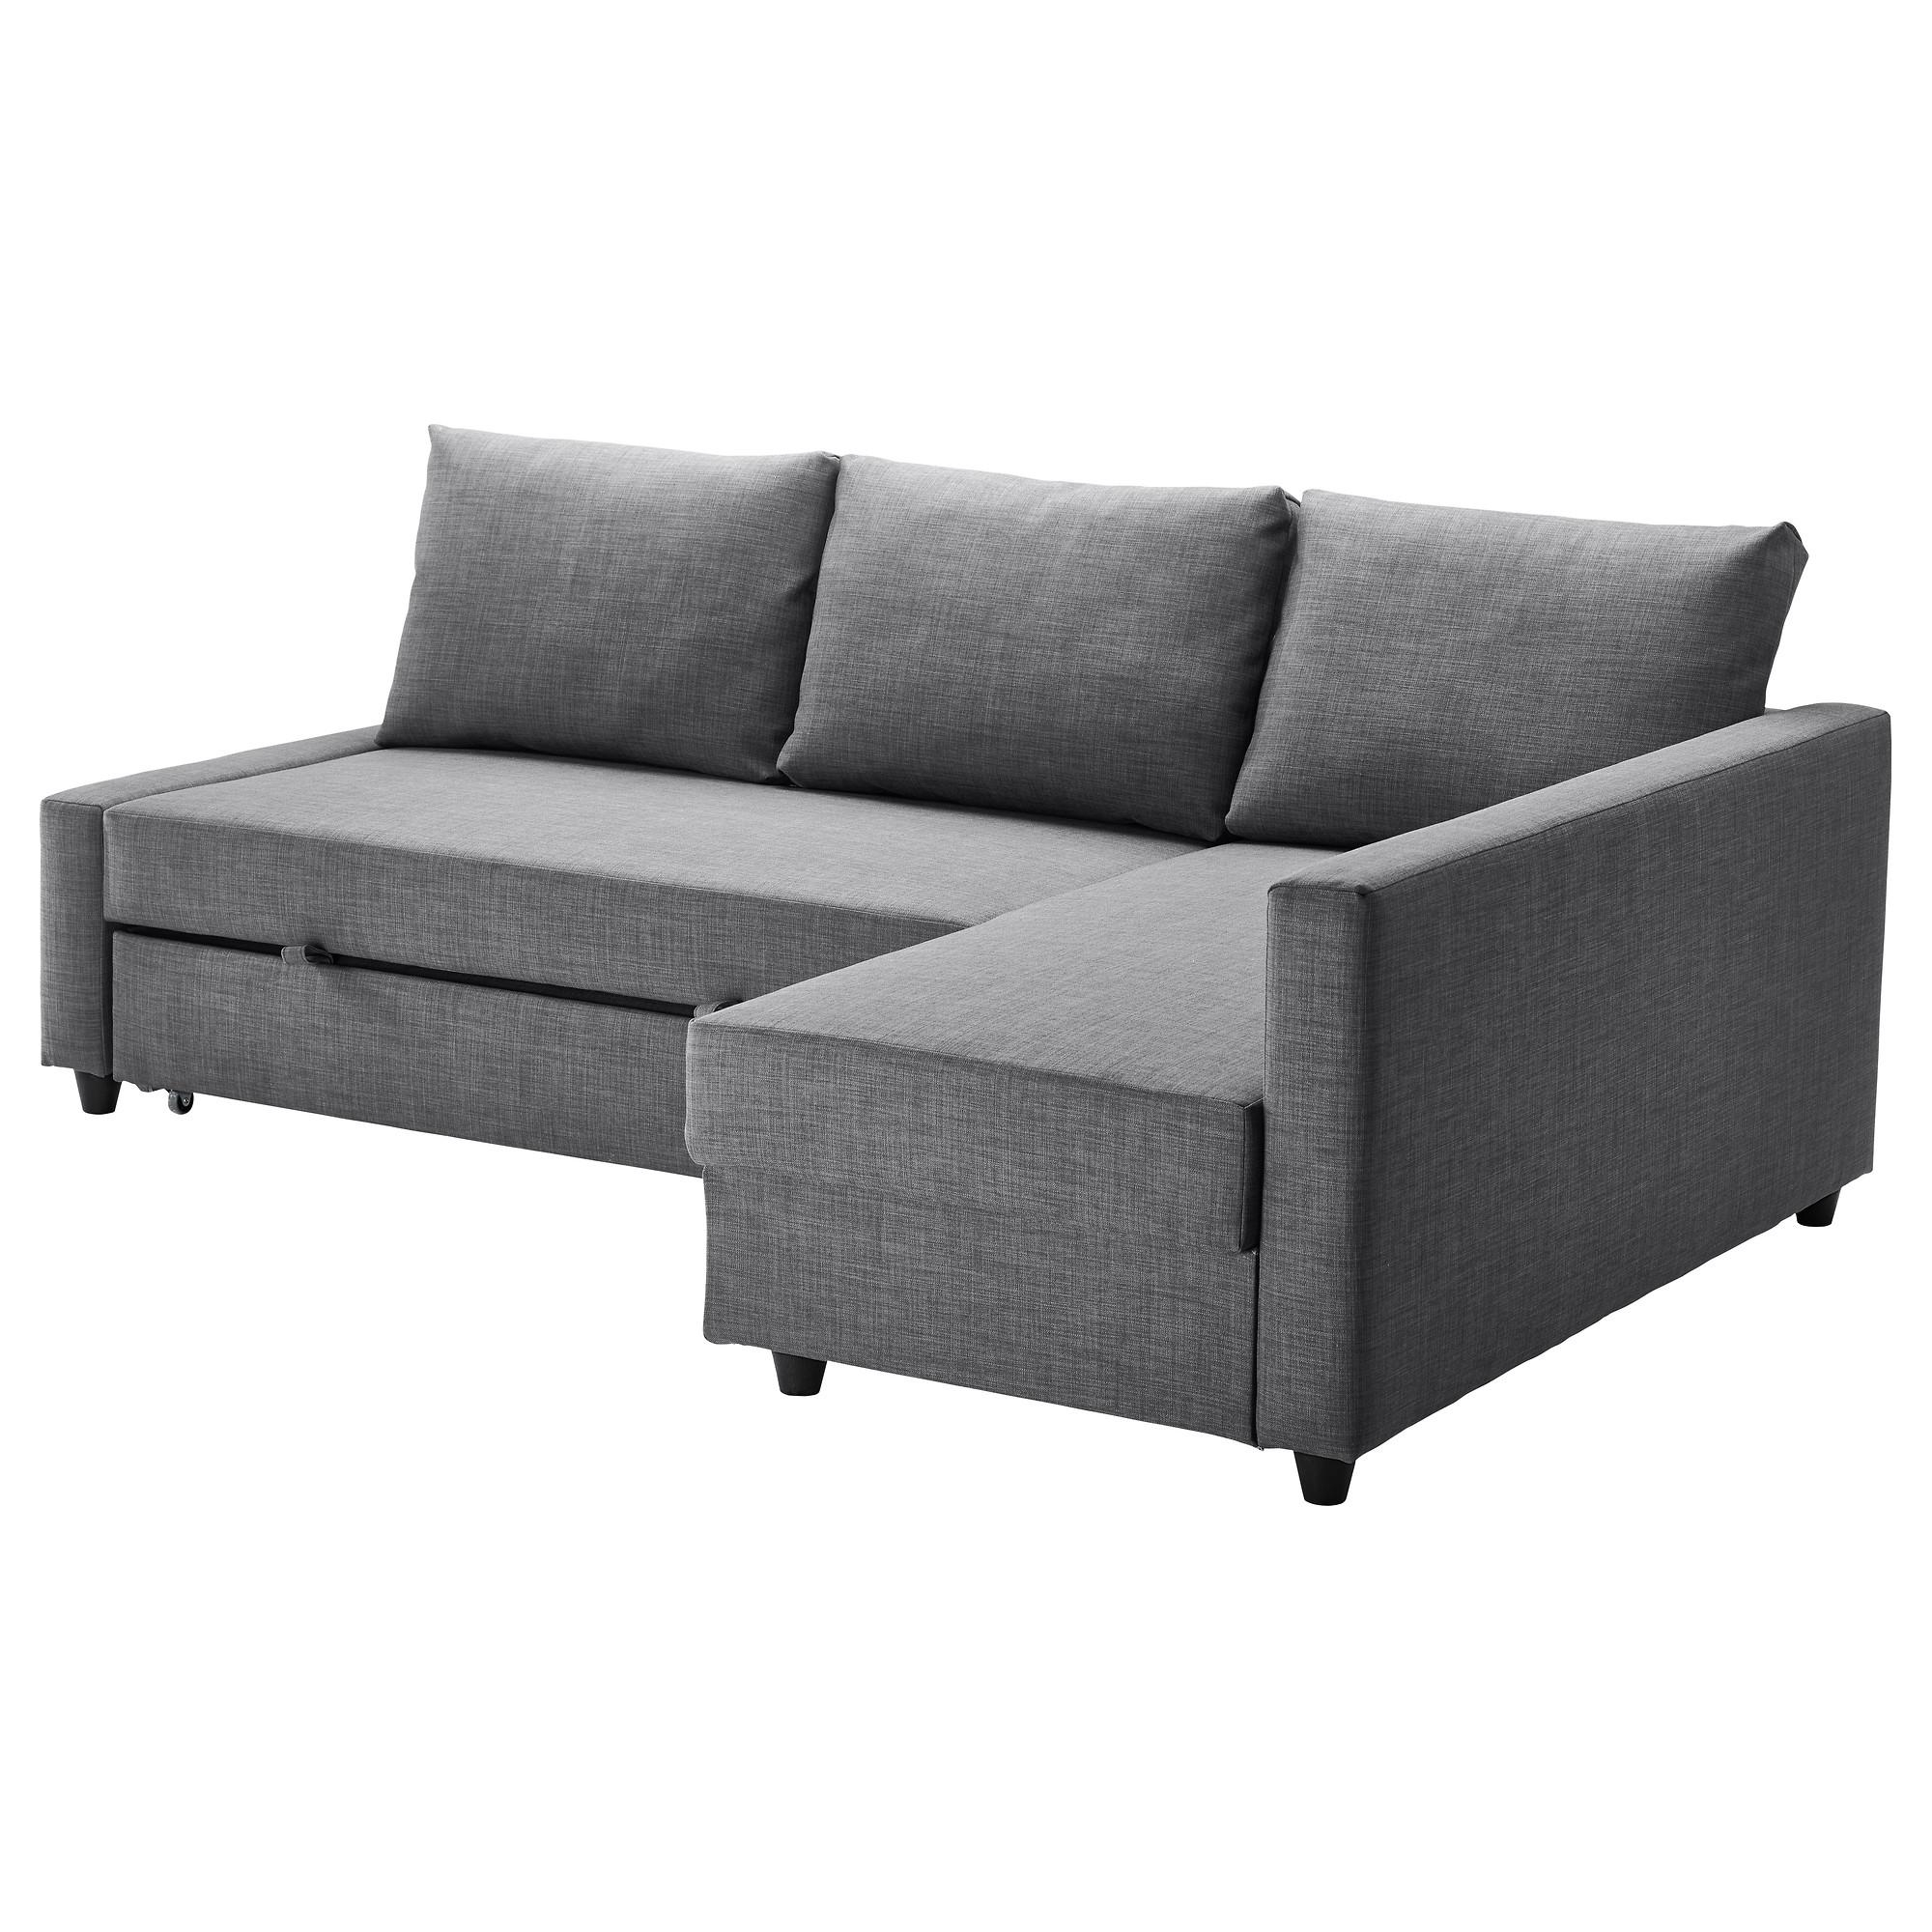 Friheten Corner Sofa Bed With Storage Skiftebo Dark Grey – Ikea For L Shaped Sofa Bed (View 6 of 20)